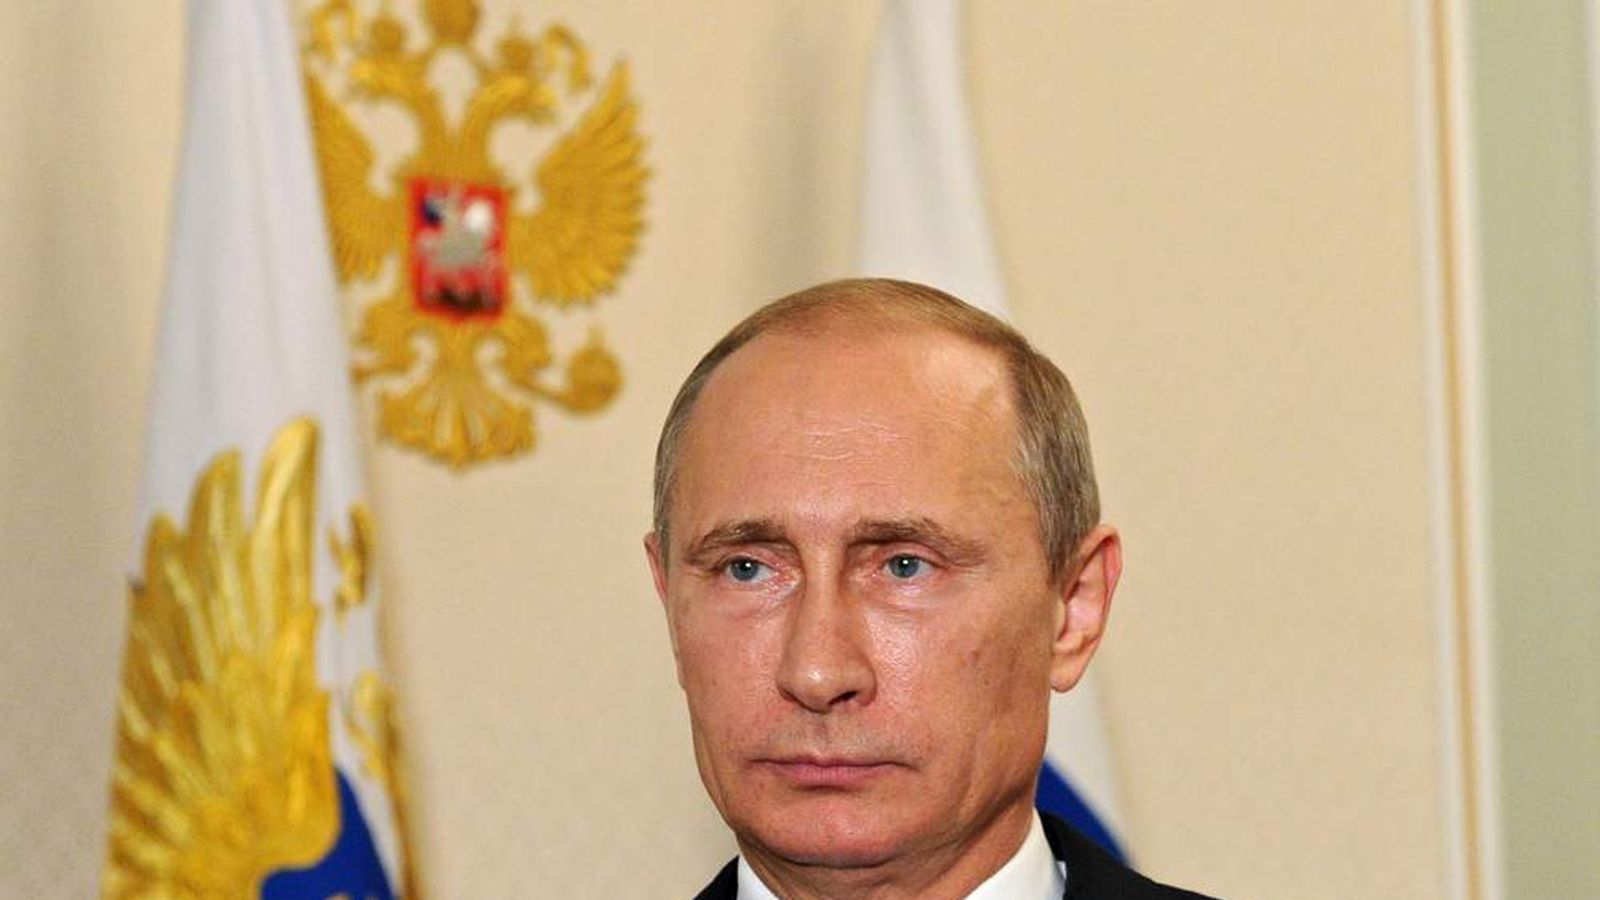 Russia's President Vladimir Putin looks on while recording his video address on the Malaysia Airlines crash.